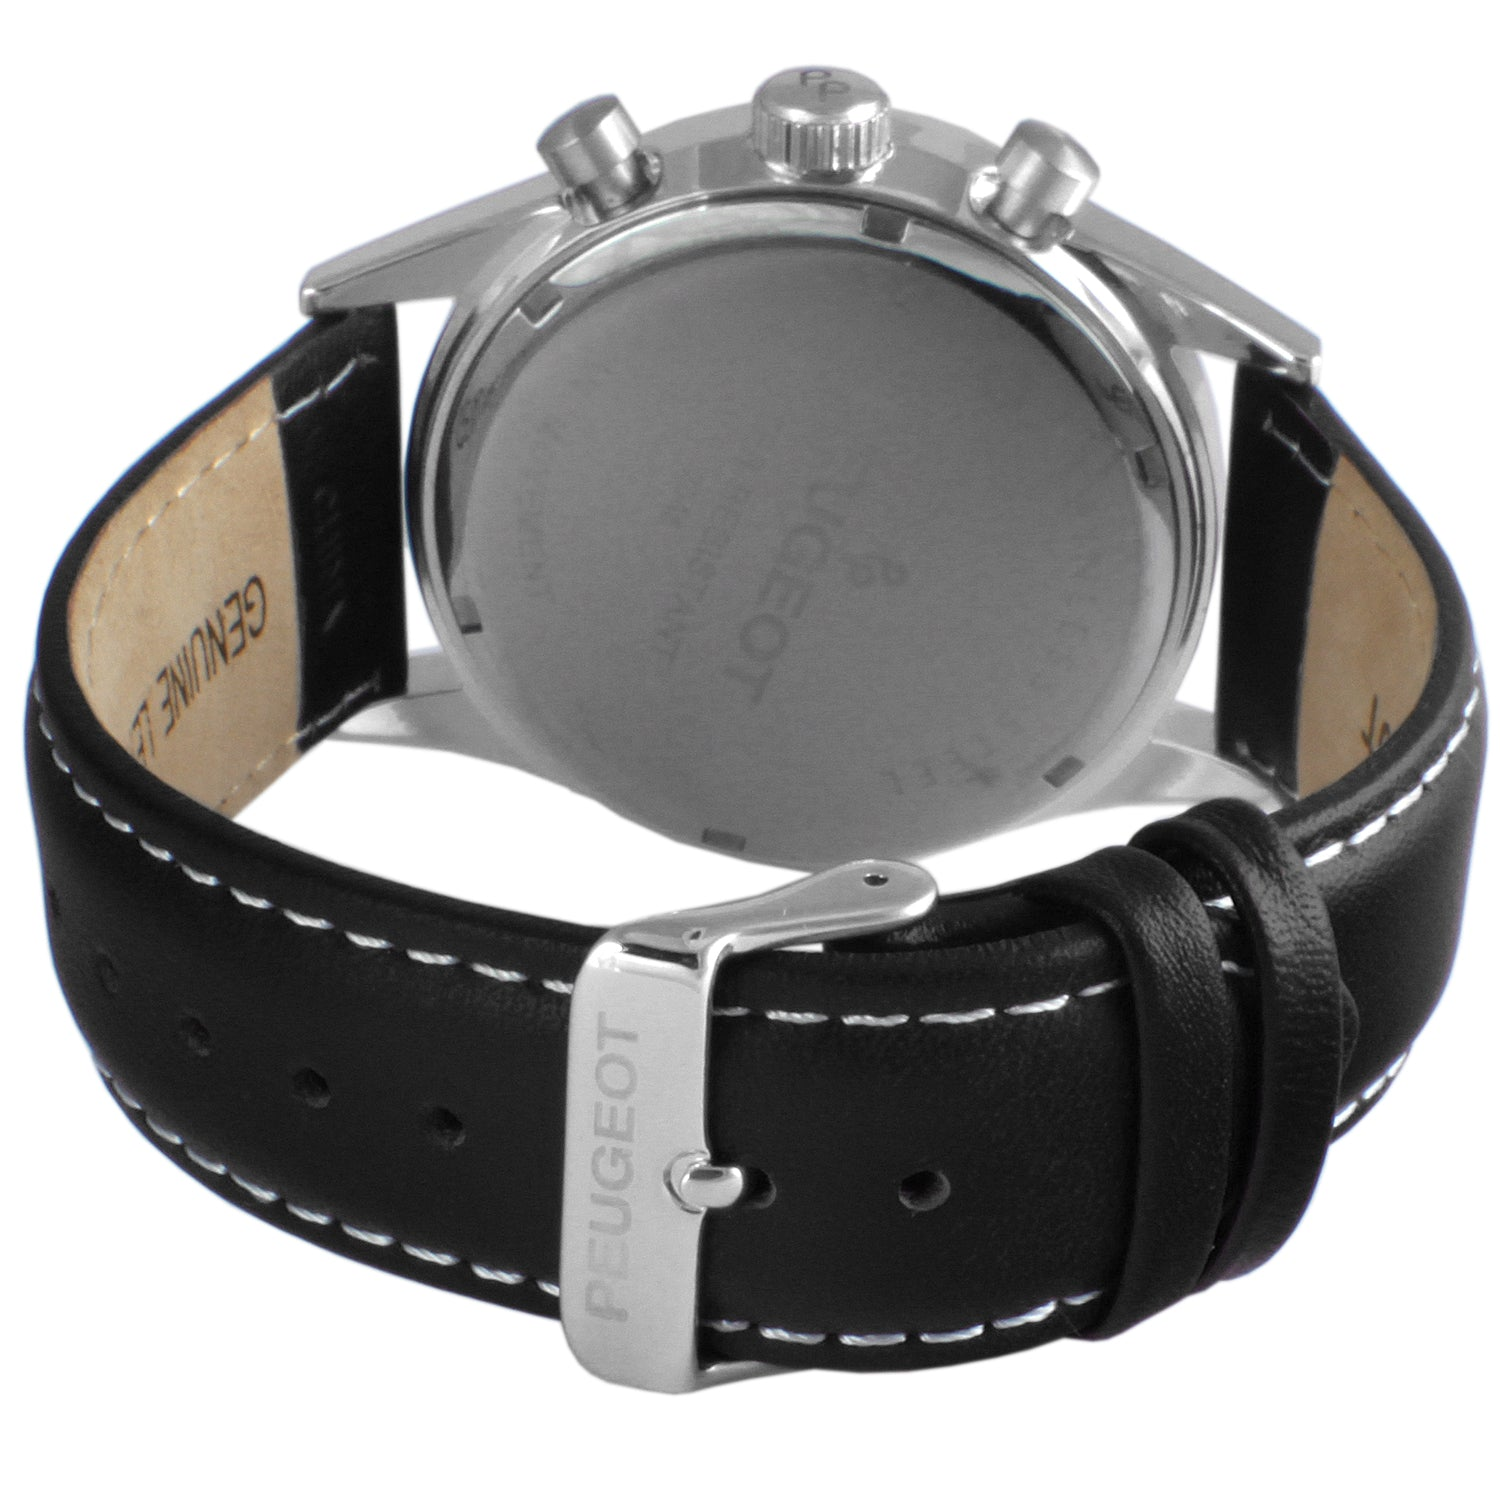 Stainless Steel Micro-Fiber Multi Function Watch - Silver/ Black